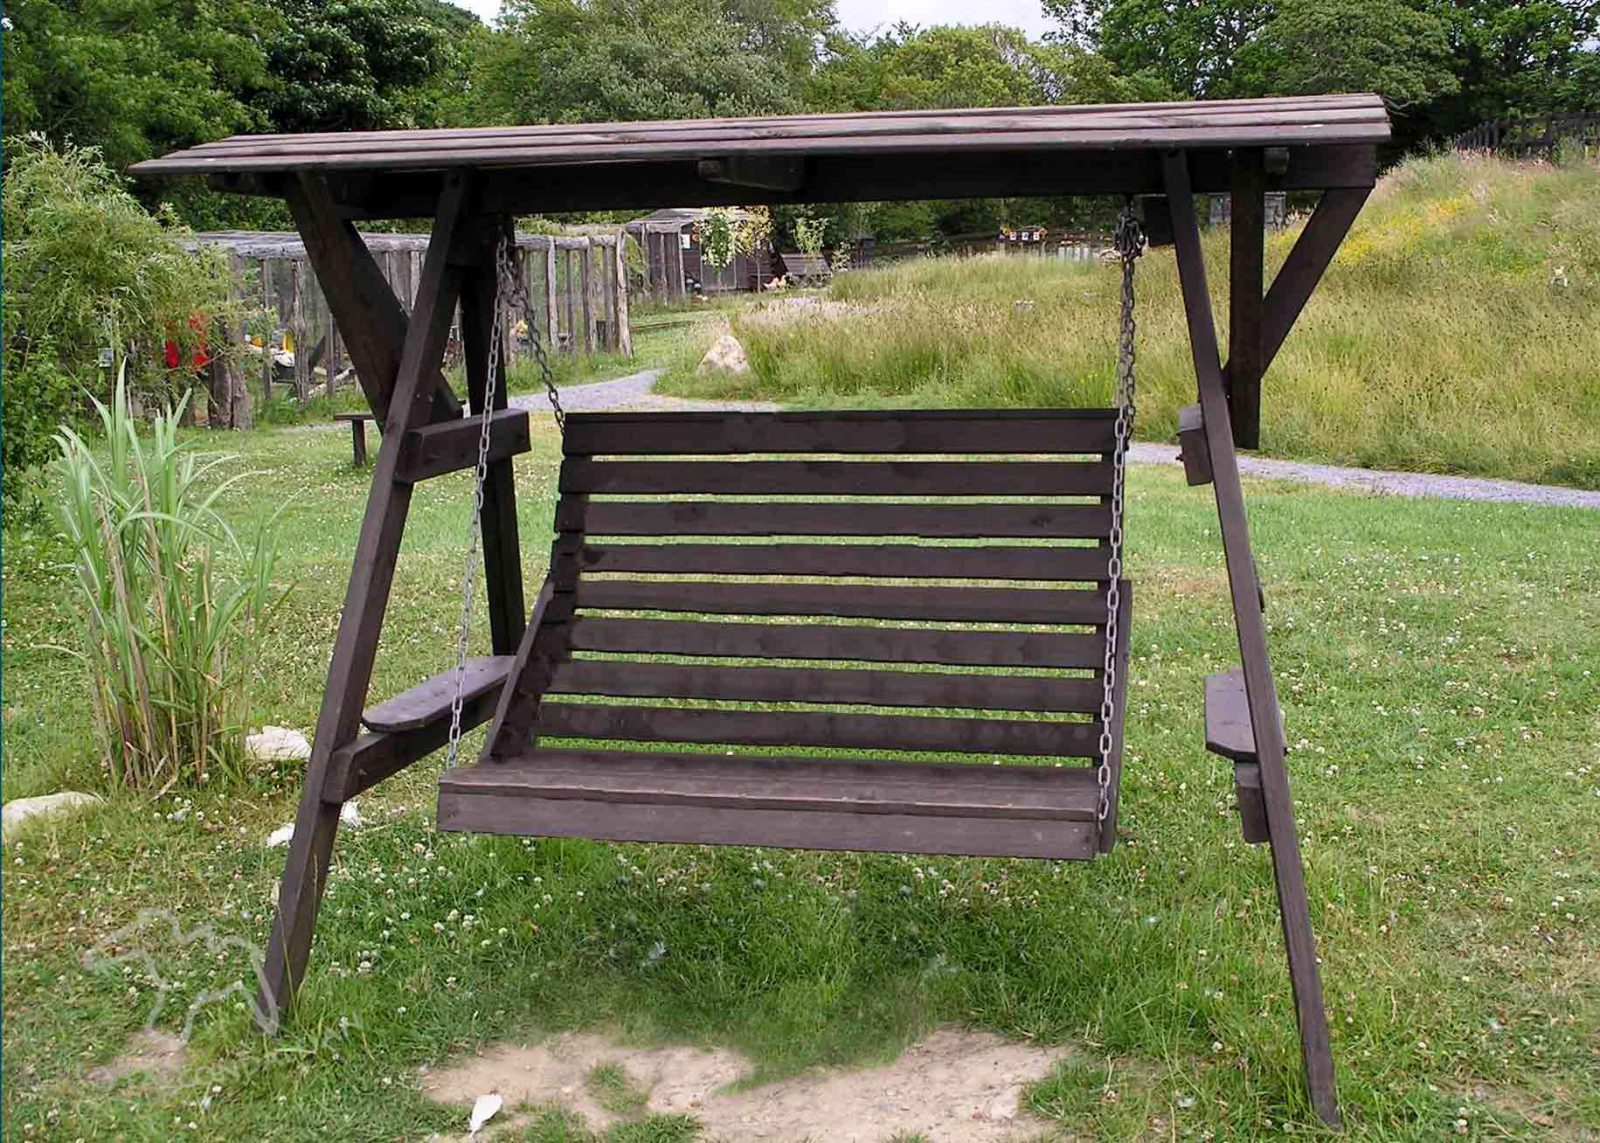 Garden swing seat for two made of wood with canopy. 5 ways to get your teenagers into the garden on Falcondale Life blog.